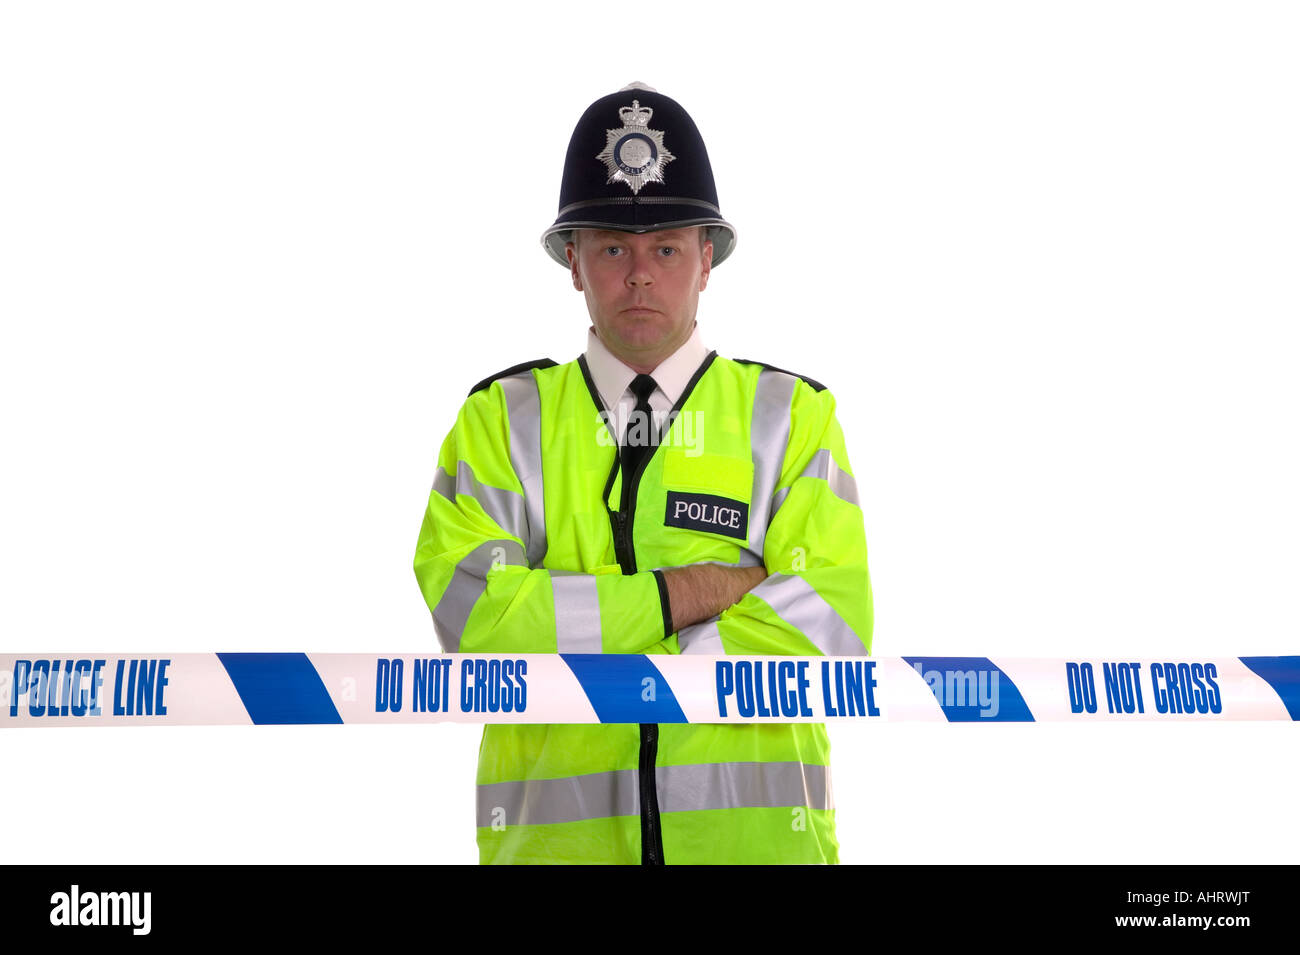 British Police officer standing behind some cordon tape Focus is on the tape - Stock Image